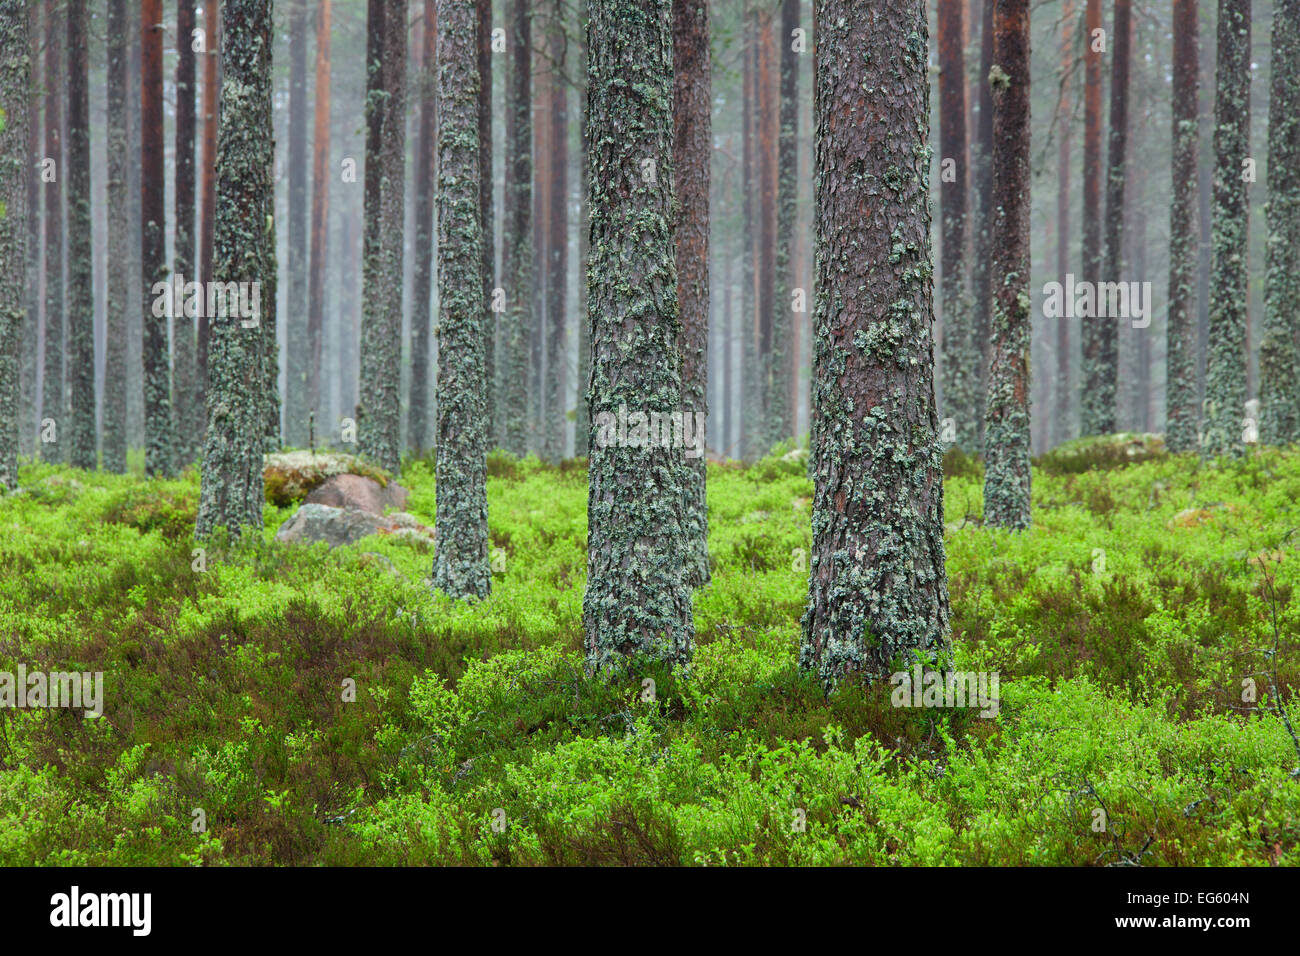 Scots Pine (Pinus sylvestris), tree trunks covered in tube lichen (Hypogymnia physodes / Parmelia physodes) in coniferous - Stock Image